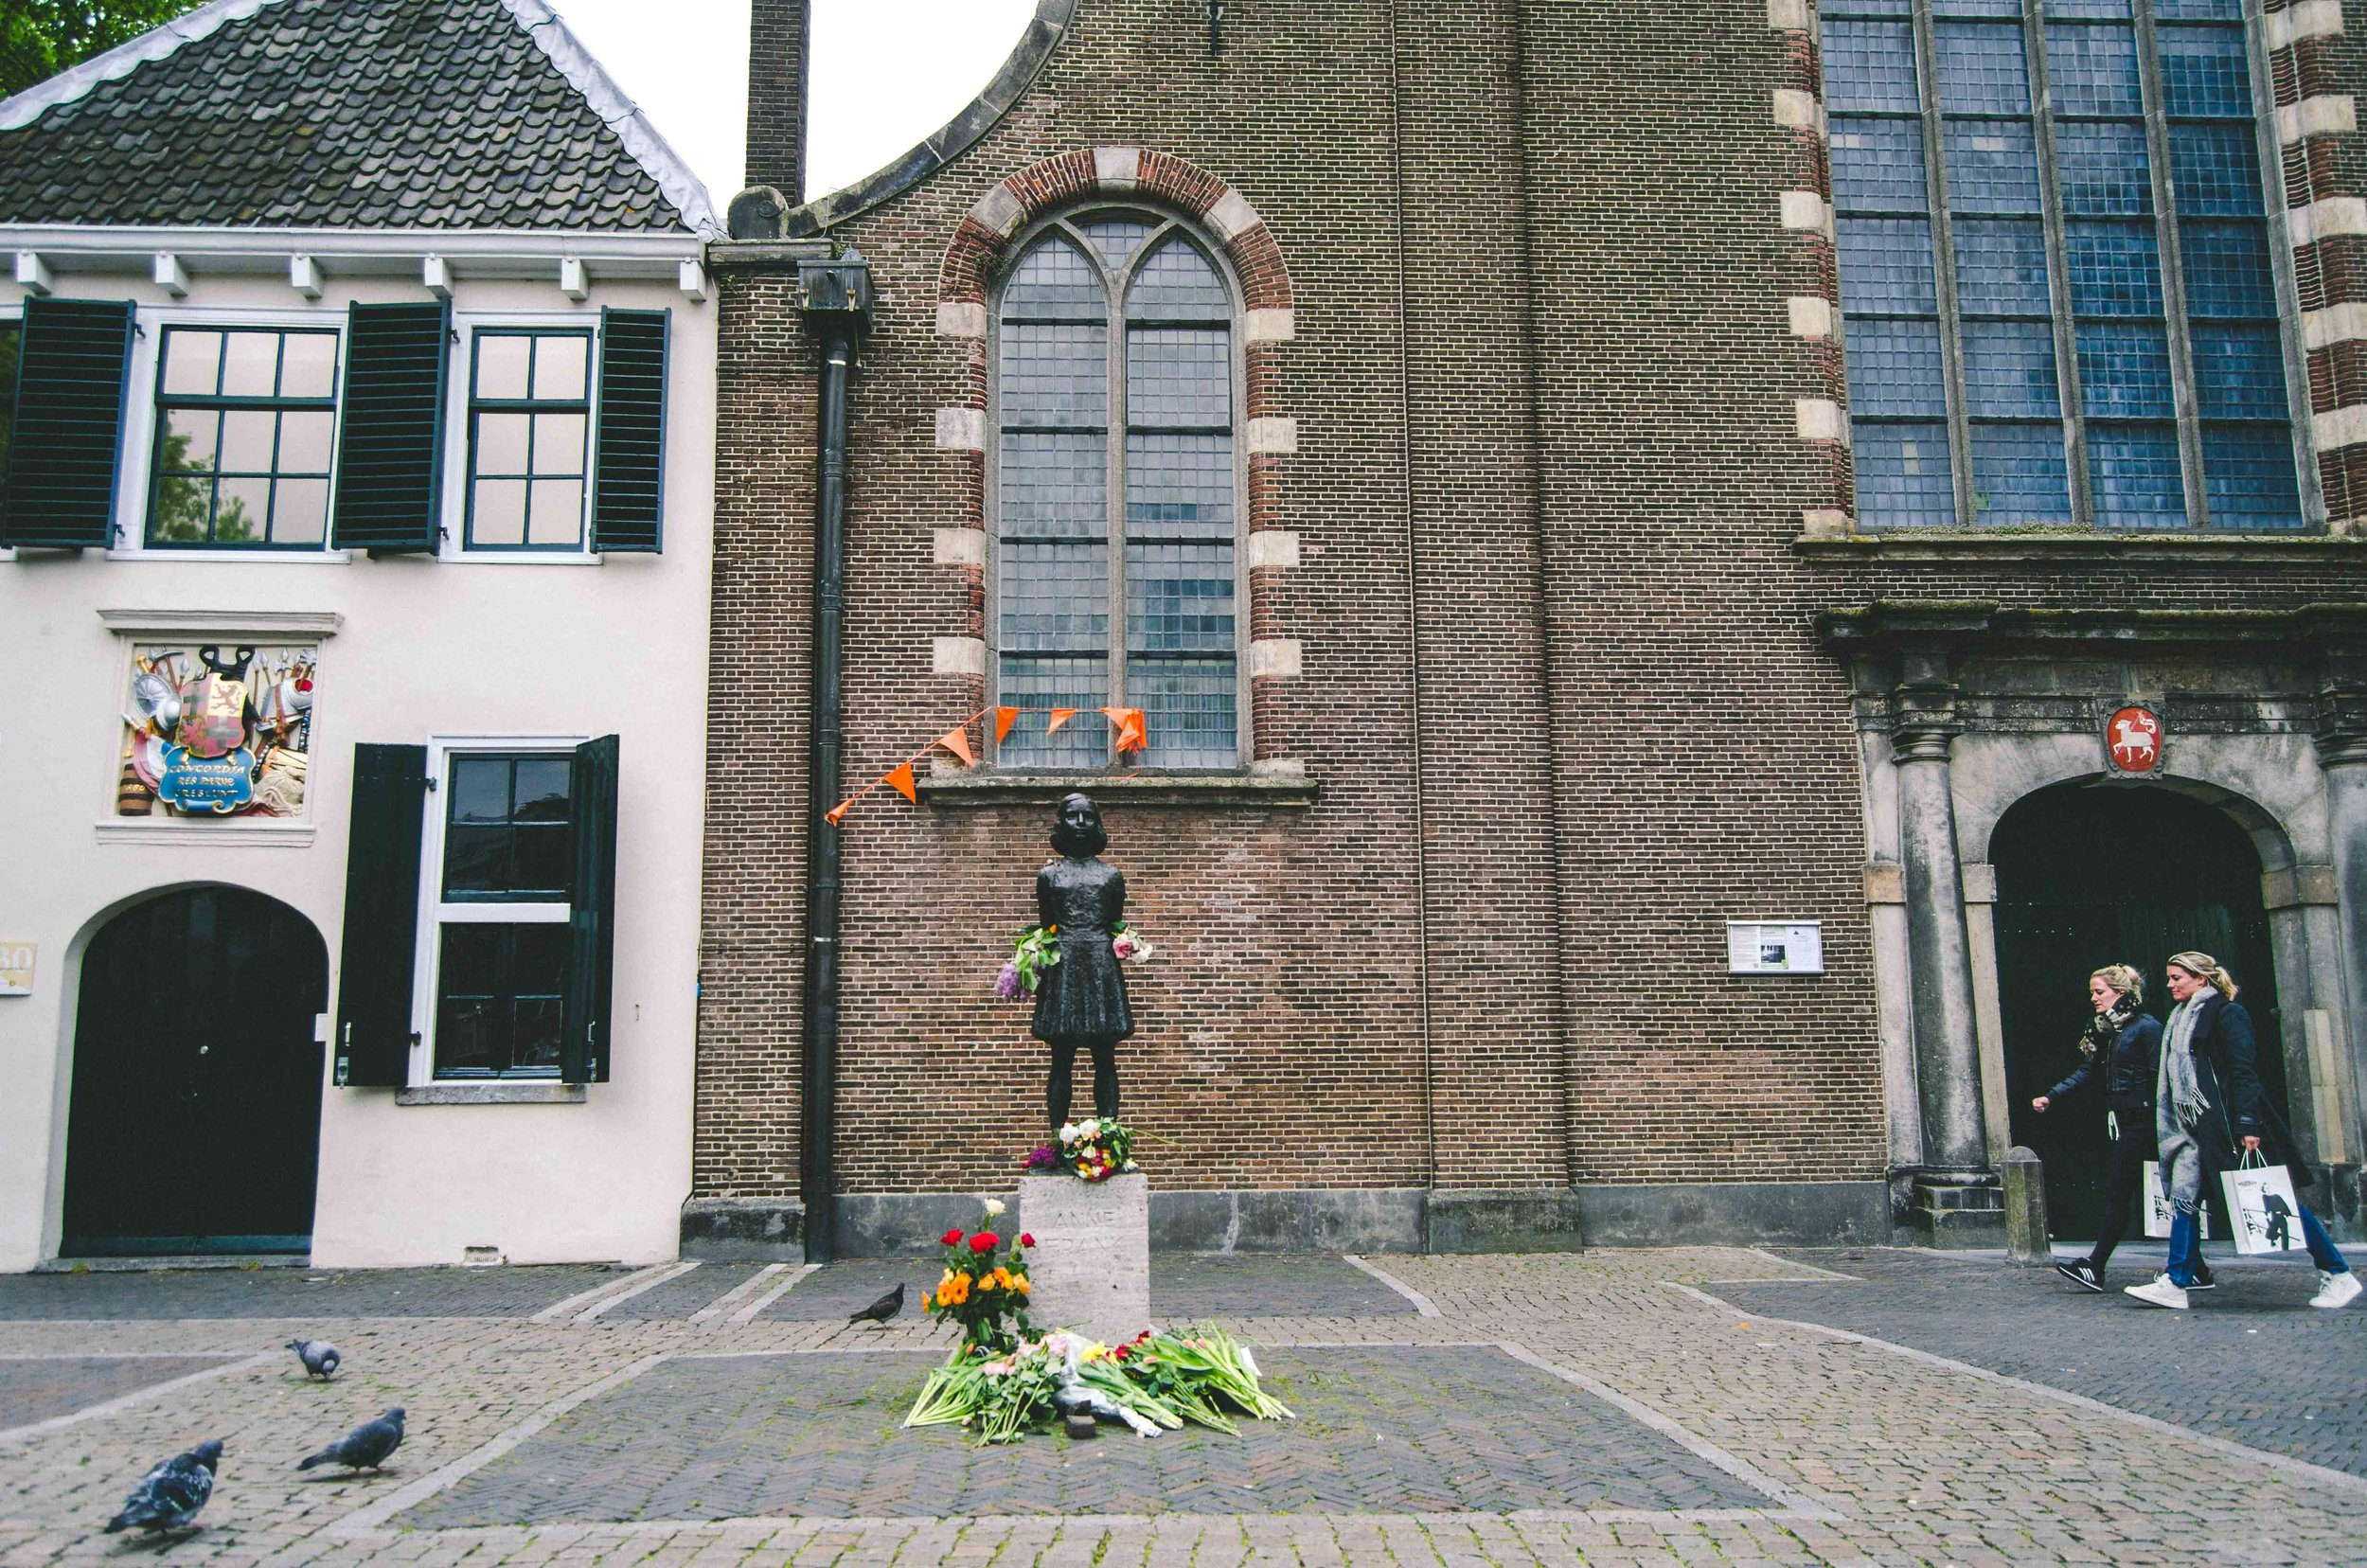 Utrecht // Orange flags for Kings' Day, flowers by Anne Frank's statue for her birthday